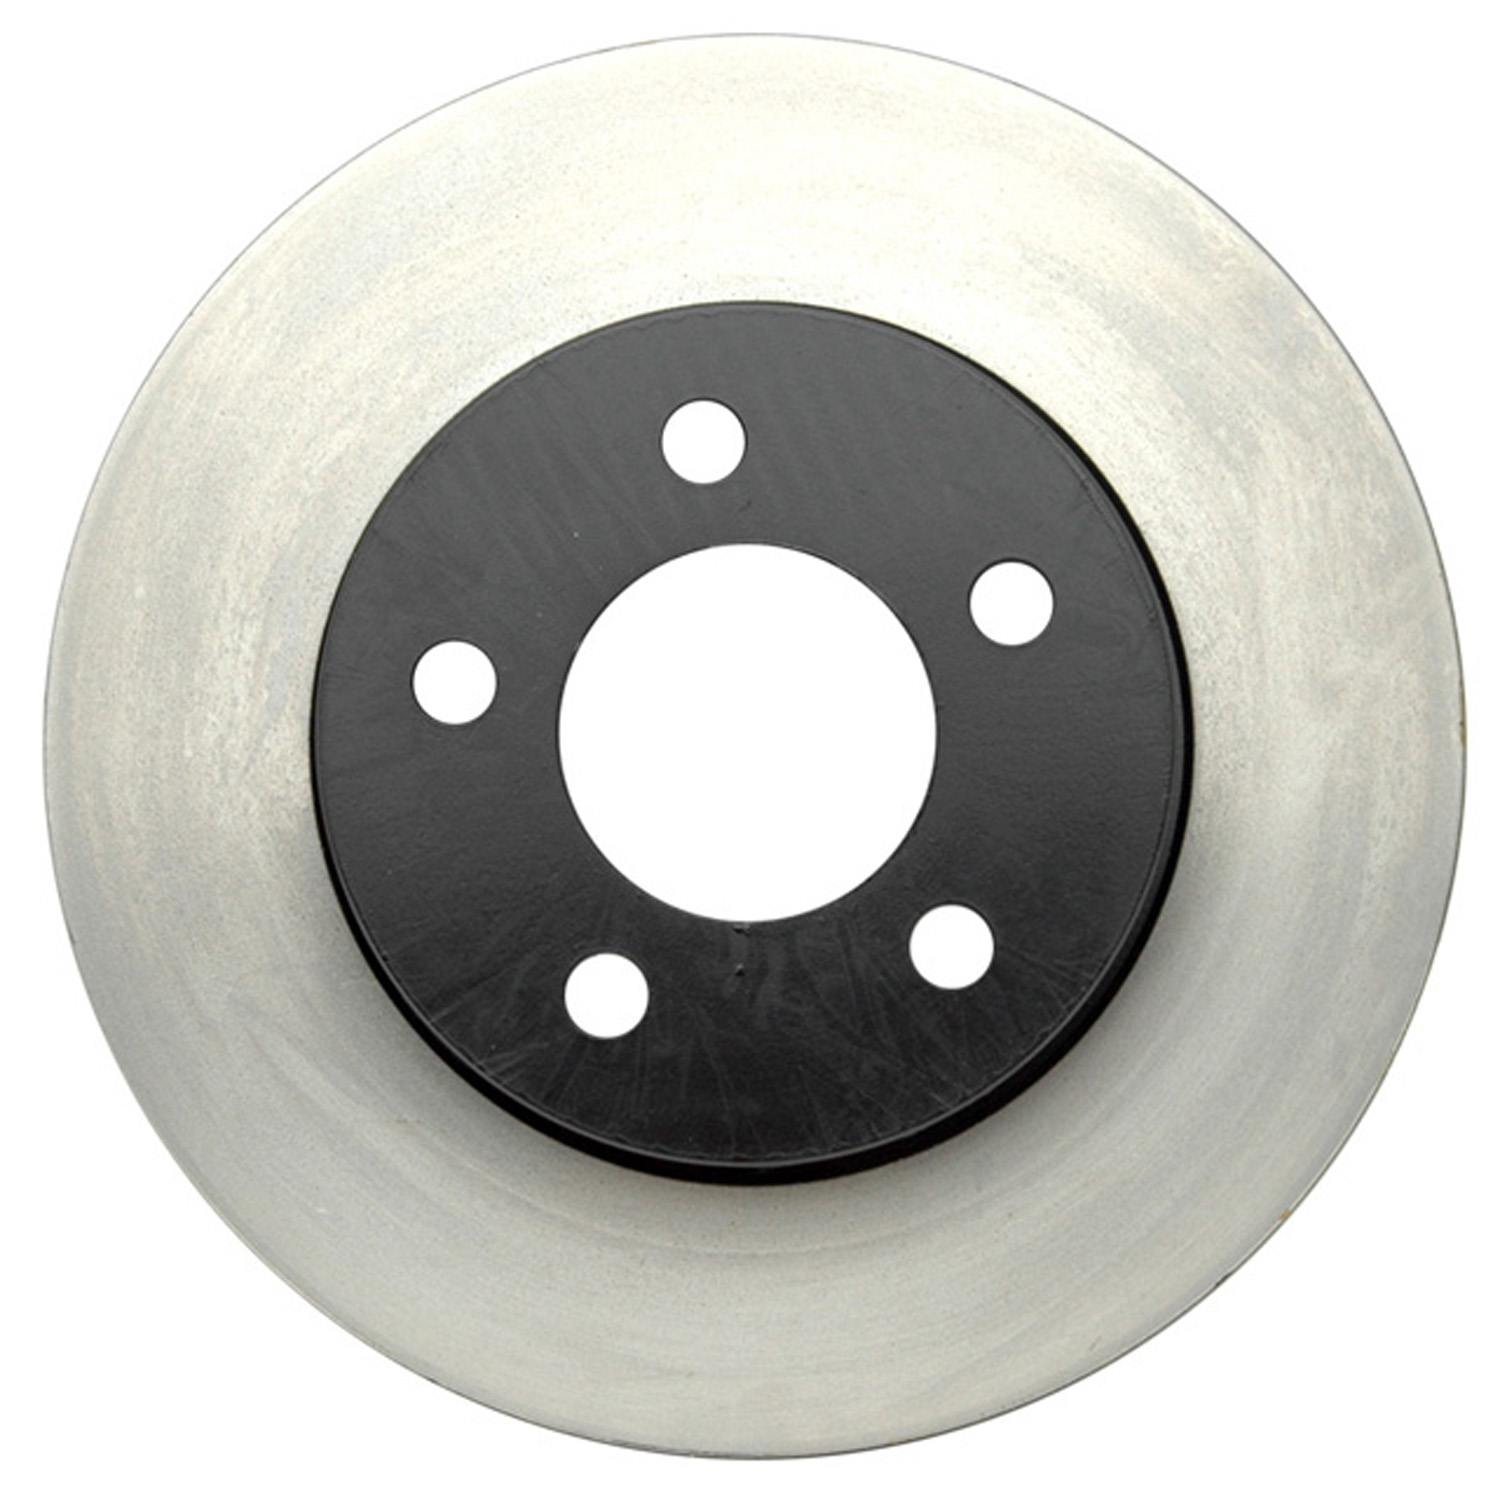 ACDELCO PROFESSIONAL BRAKES - Disc Brake Rotor (Front) - ADU 18A736